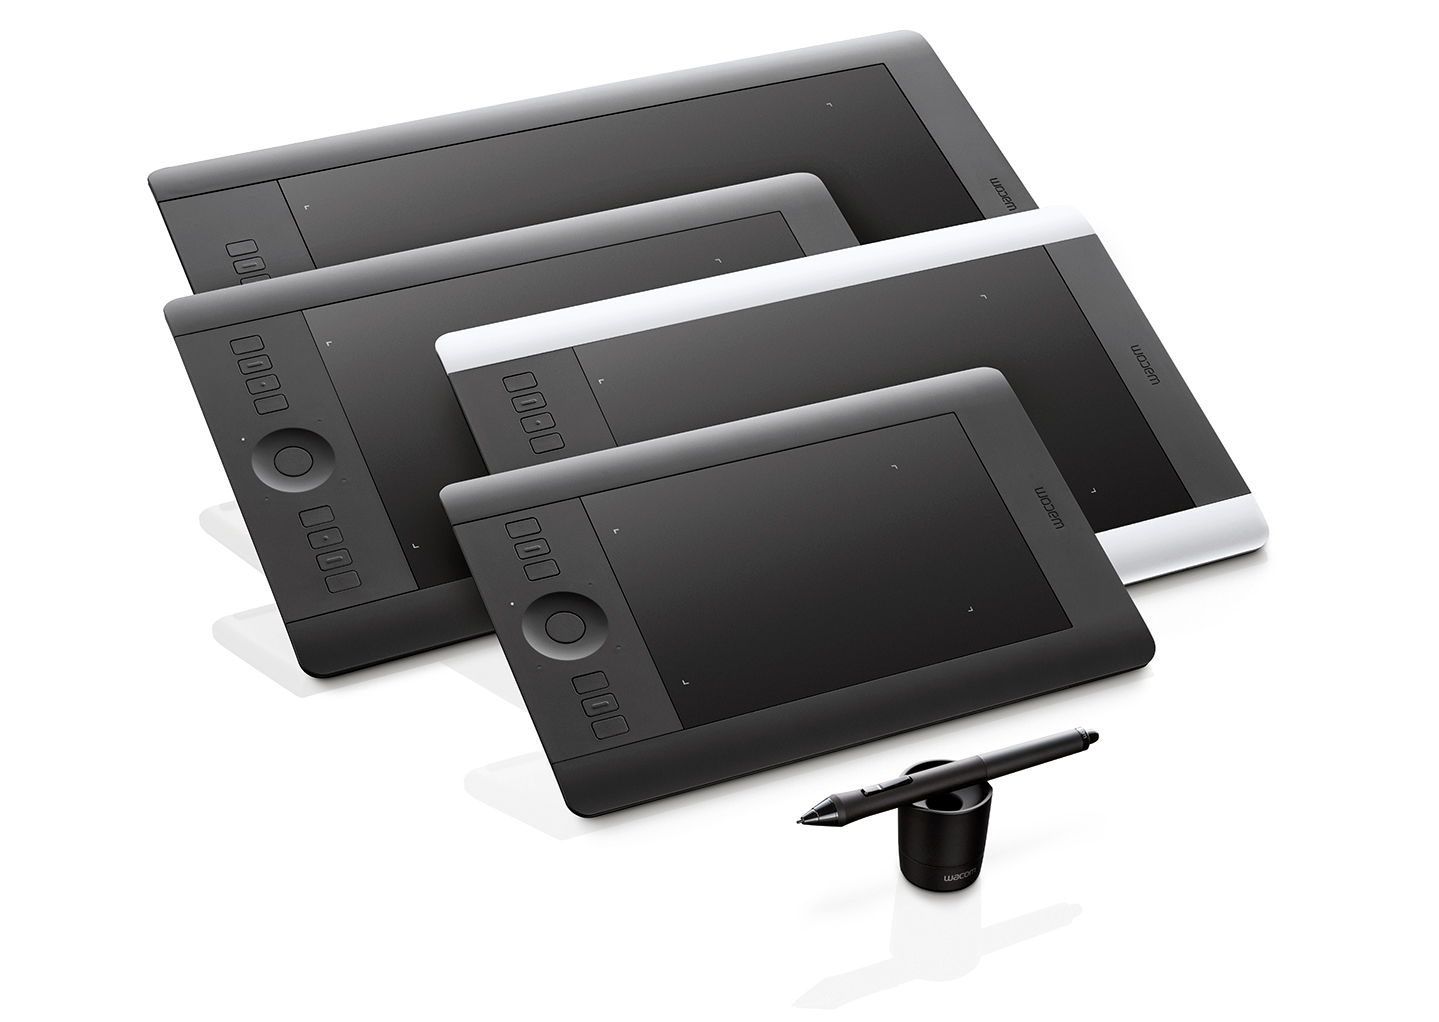 The Wacom Intuos Pro family of tablets. Photo: ©Wacom